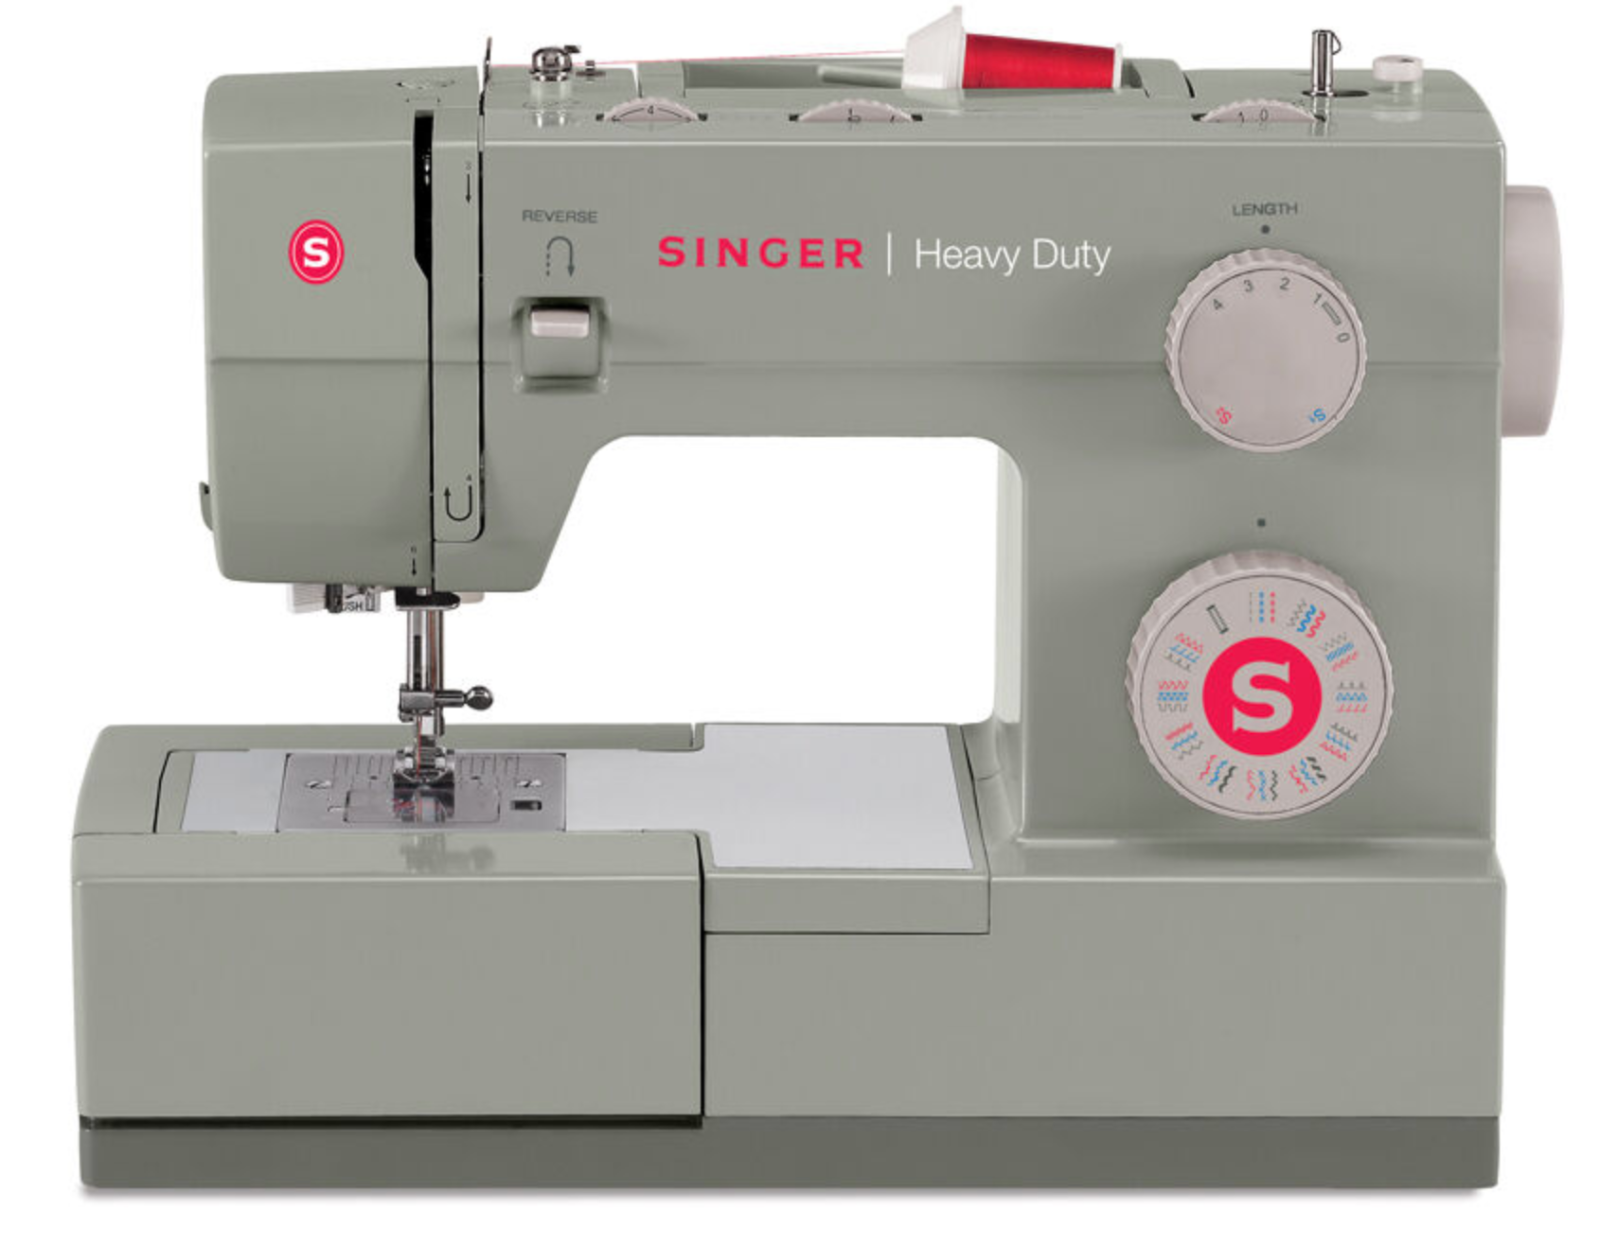 s l1600 - Singer Singer Sewing Machine 4452 Heavy Duty with 32 Built-in Stitches